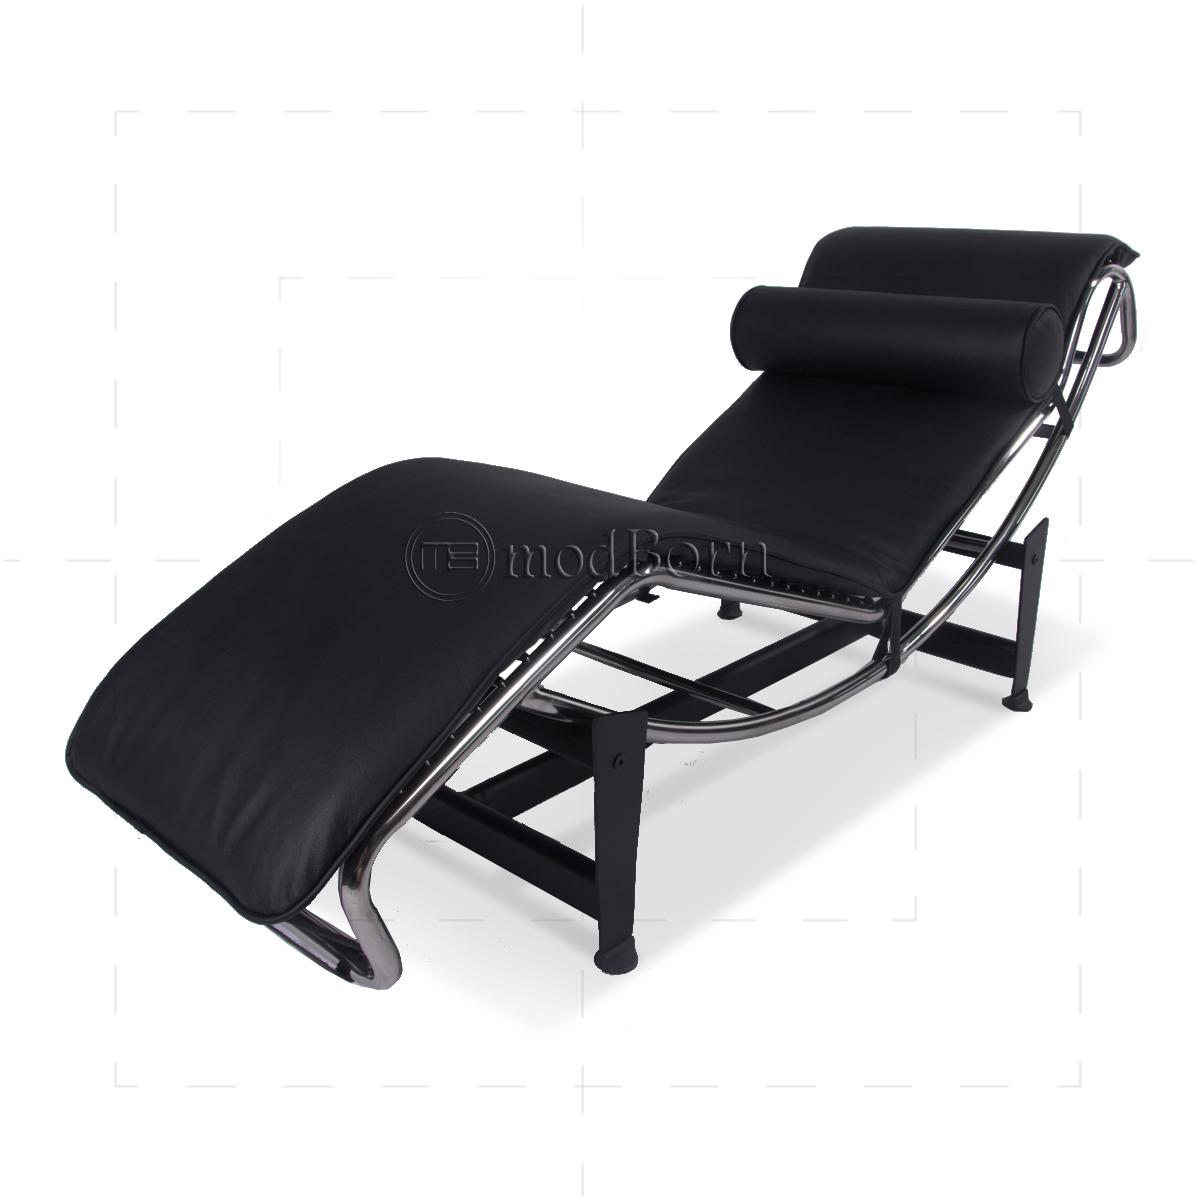 le corbusier style lc4 chaise longue black leather replica. Black Bedroom Furniture Sets. Home Design Ideas